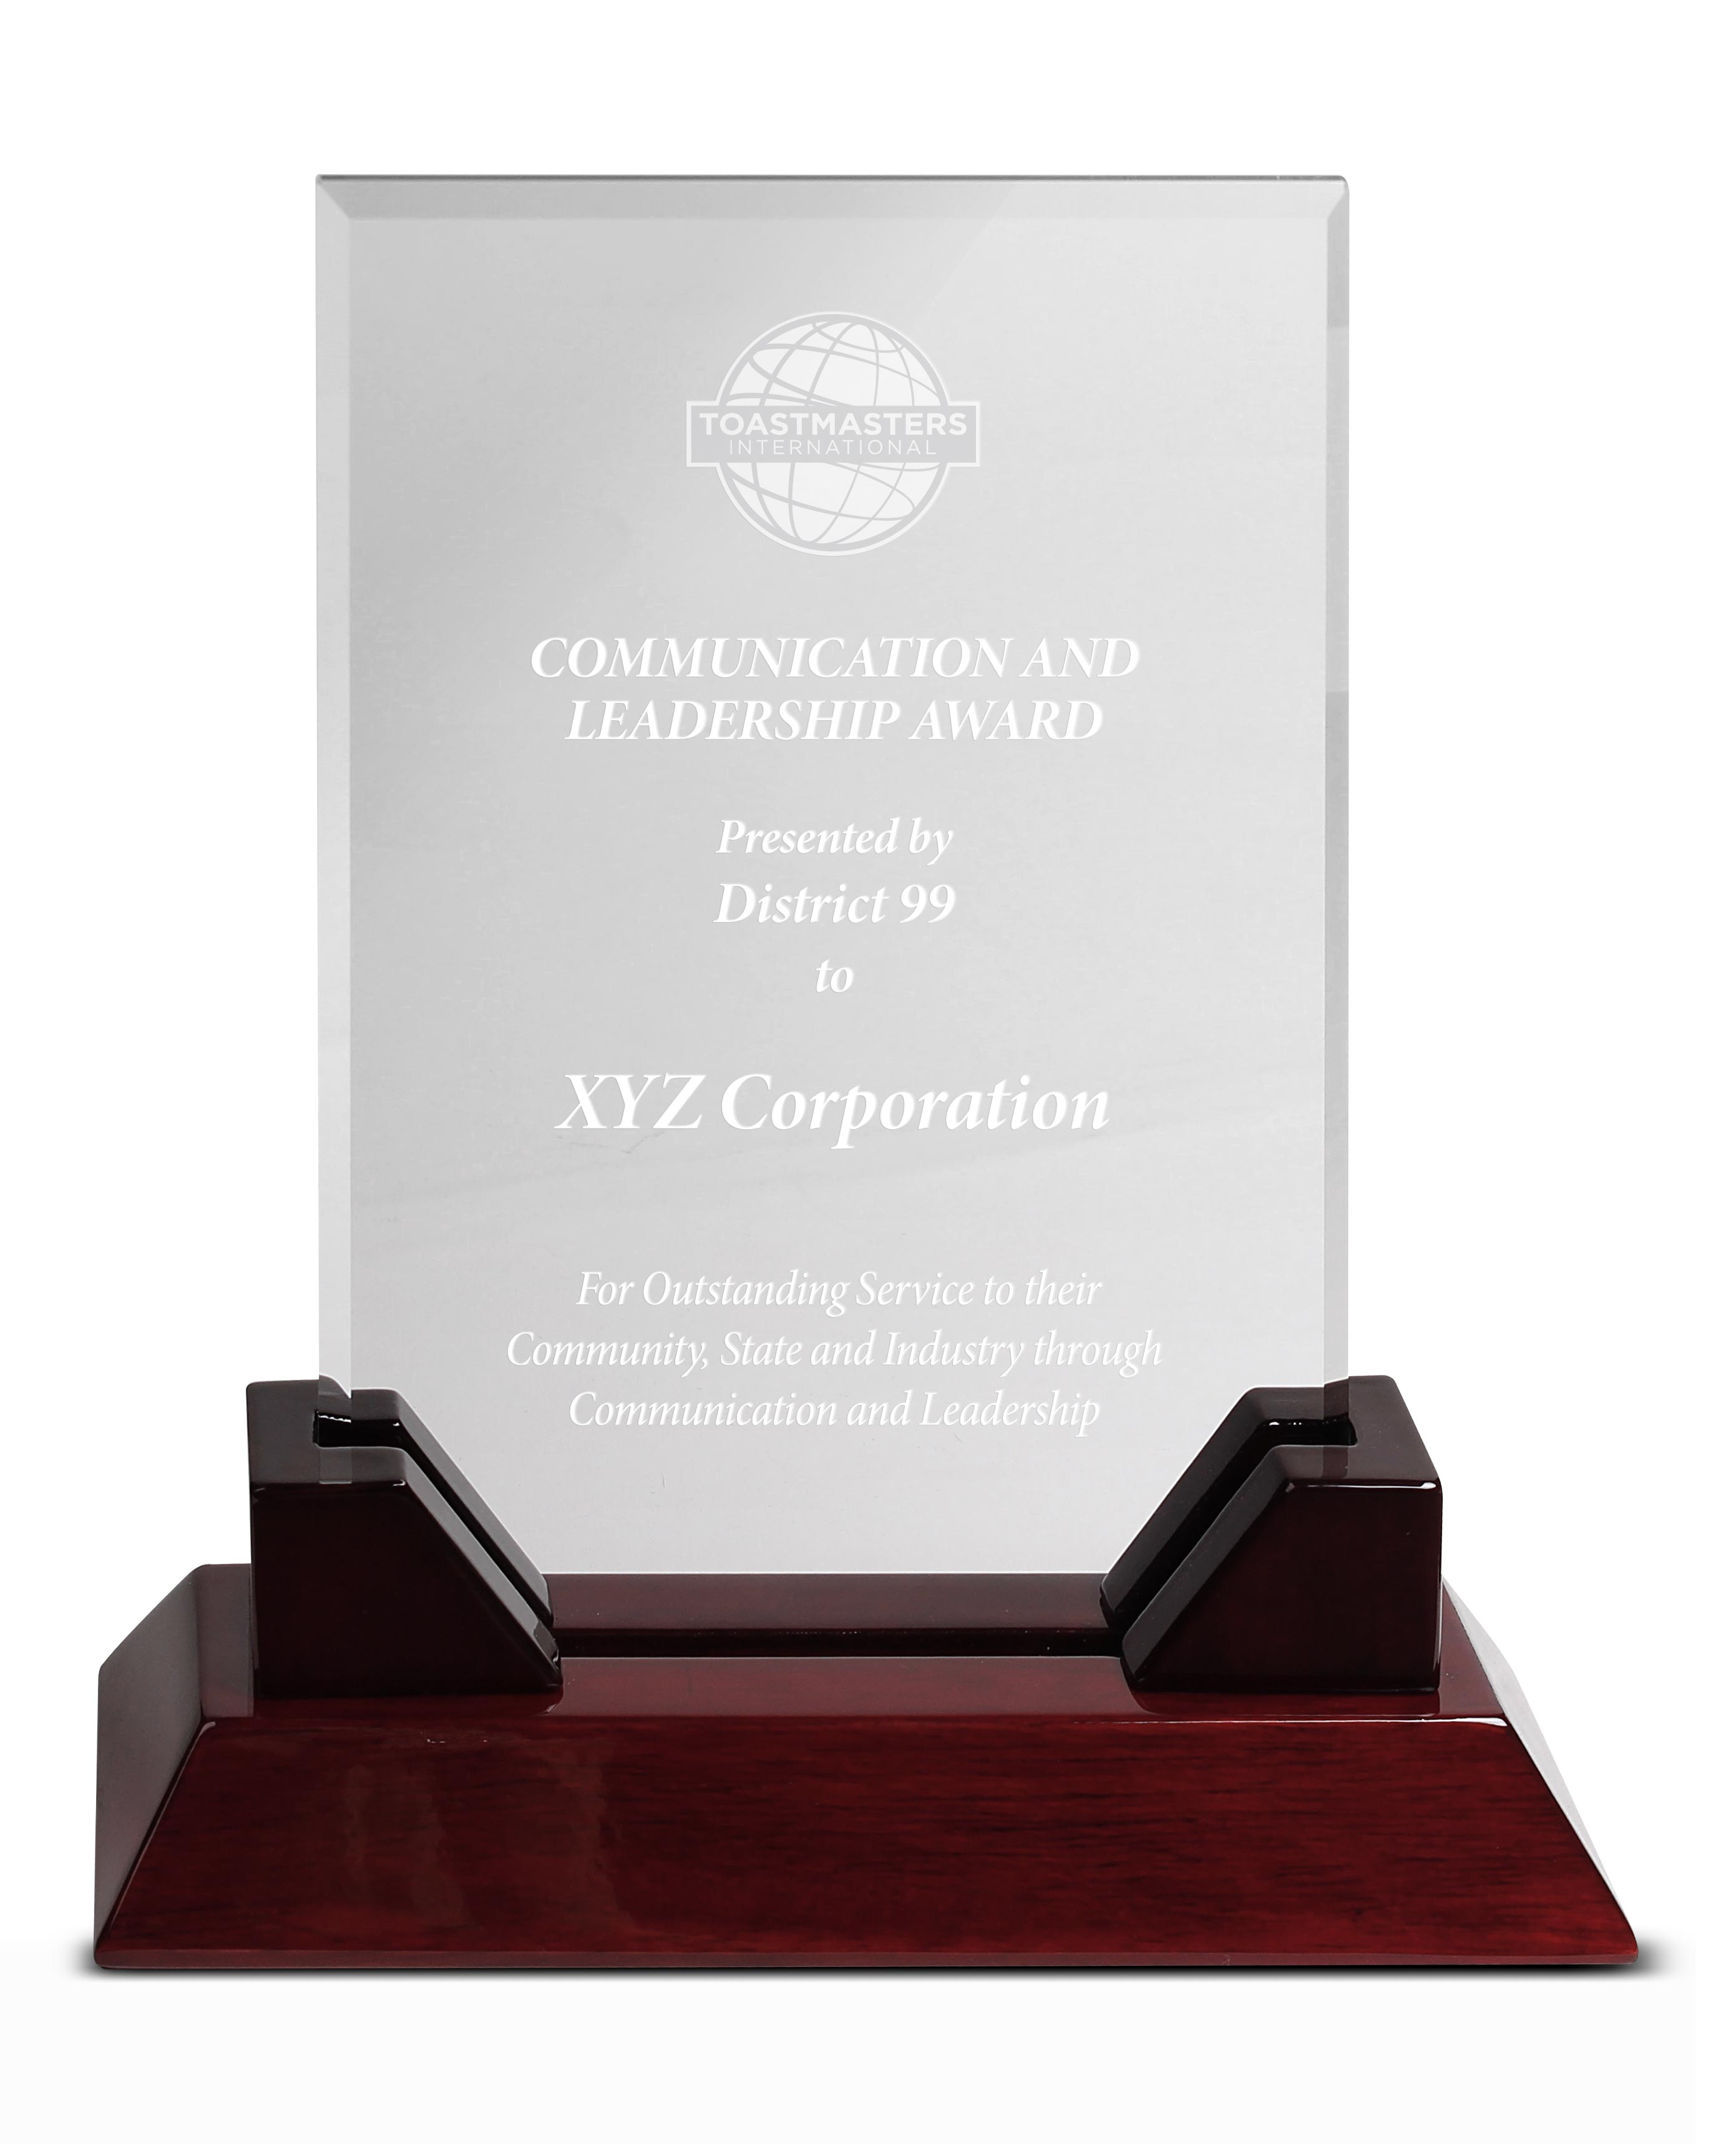 Communication and Leadership Award